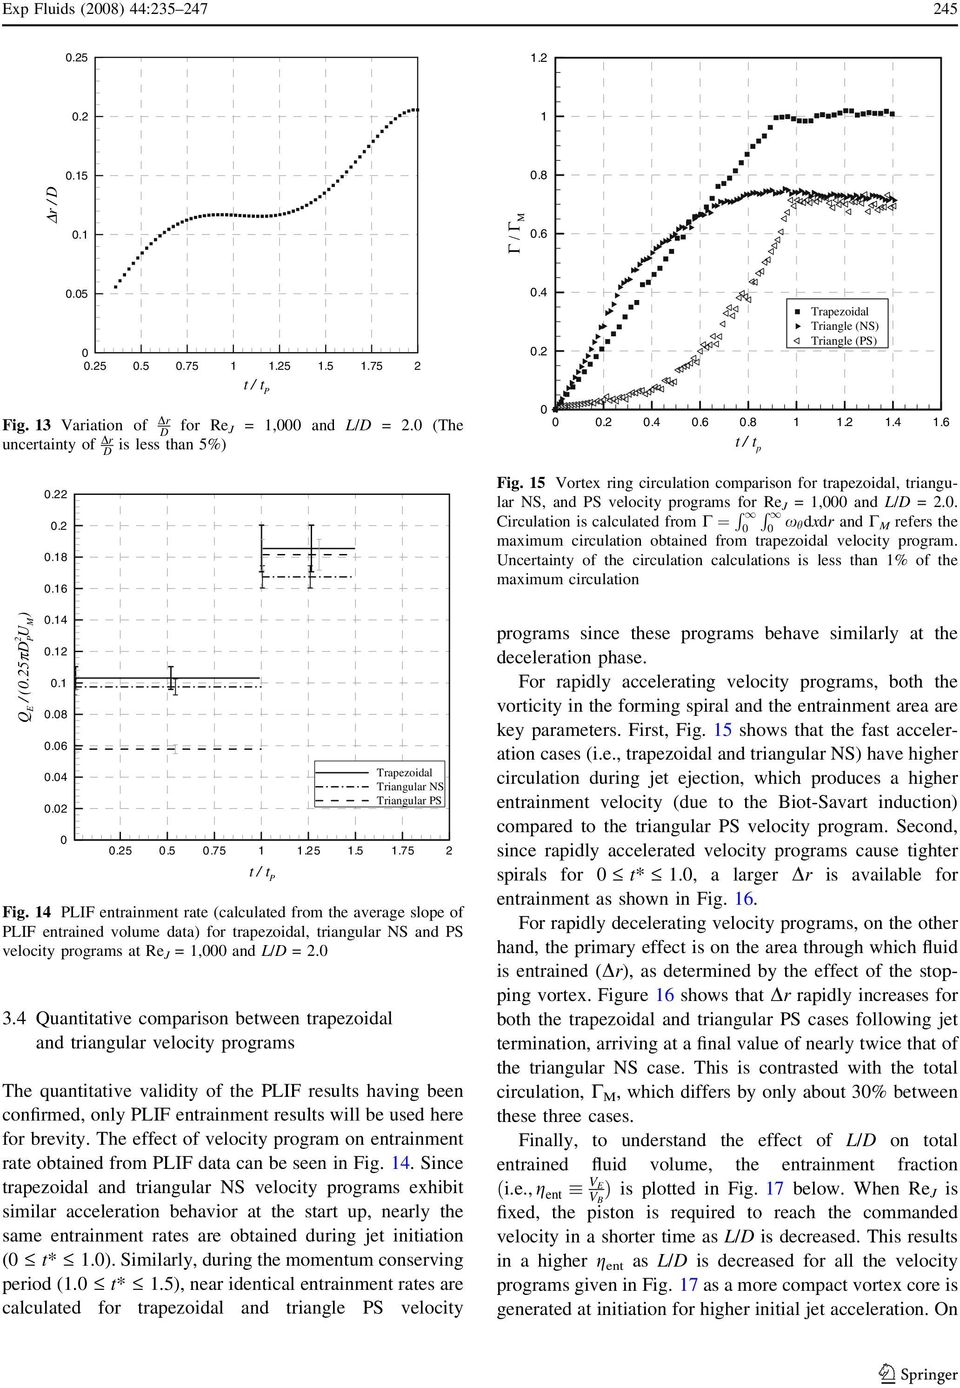 4 Quantitative comparison between trapezoidal and triangular velocity programs Trapezoidal Triangular NS Triangular PS Fig.